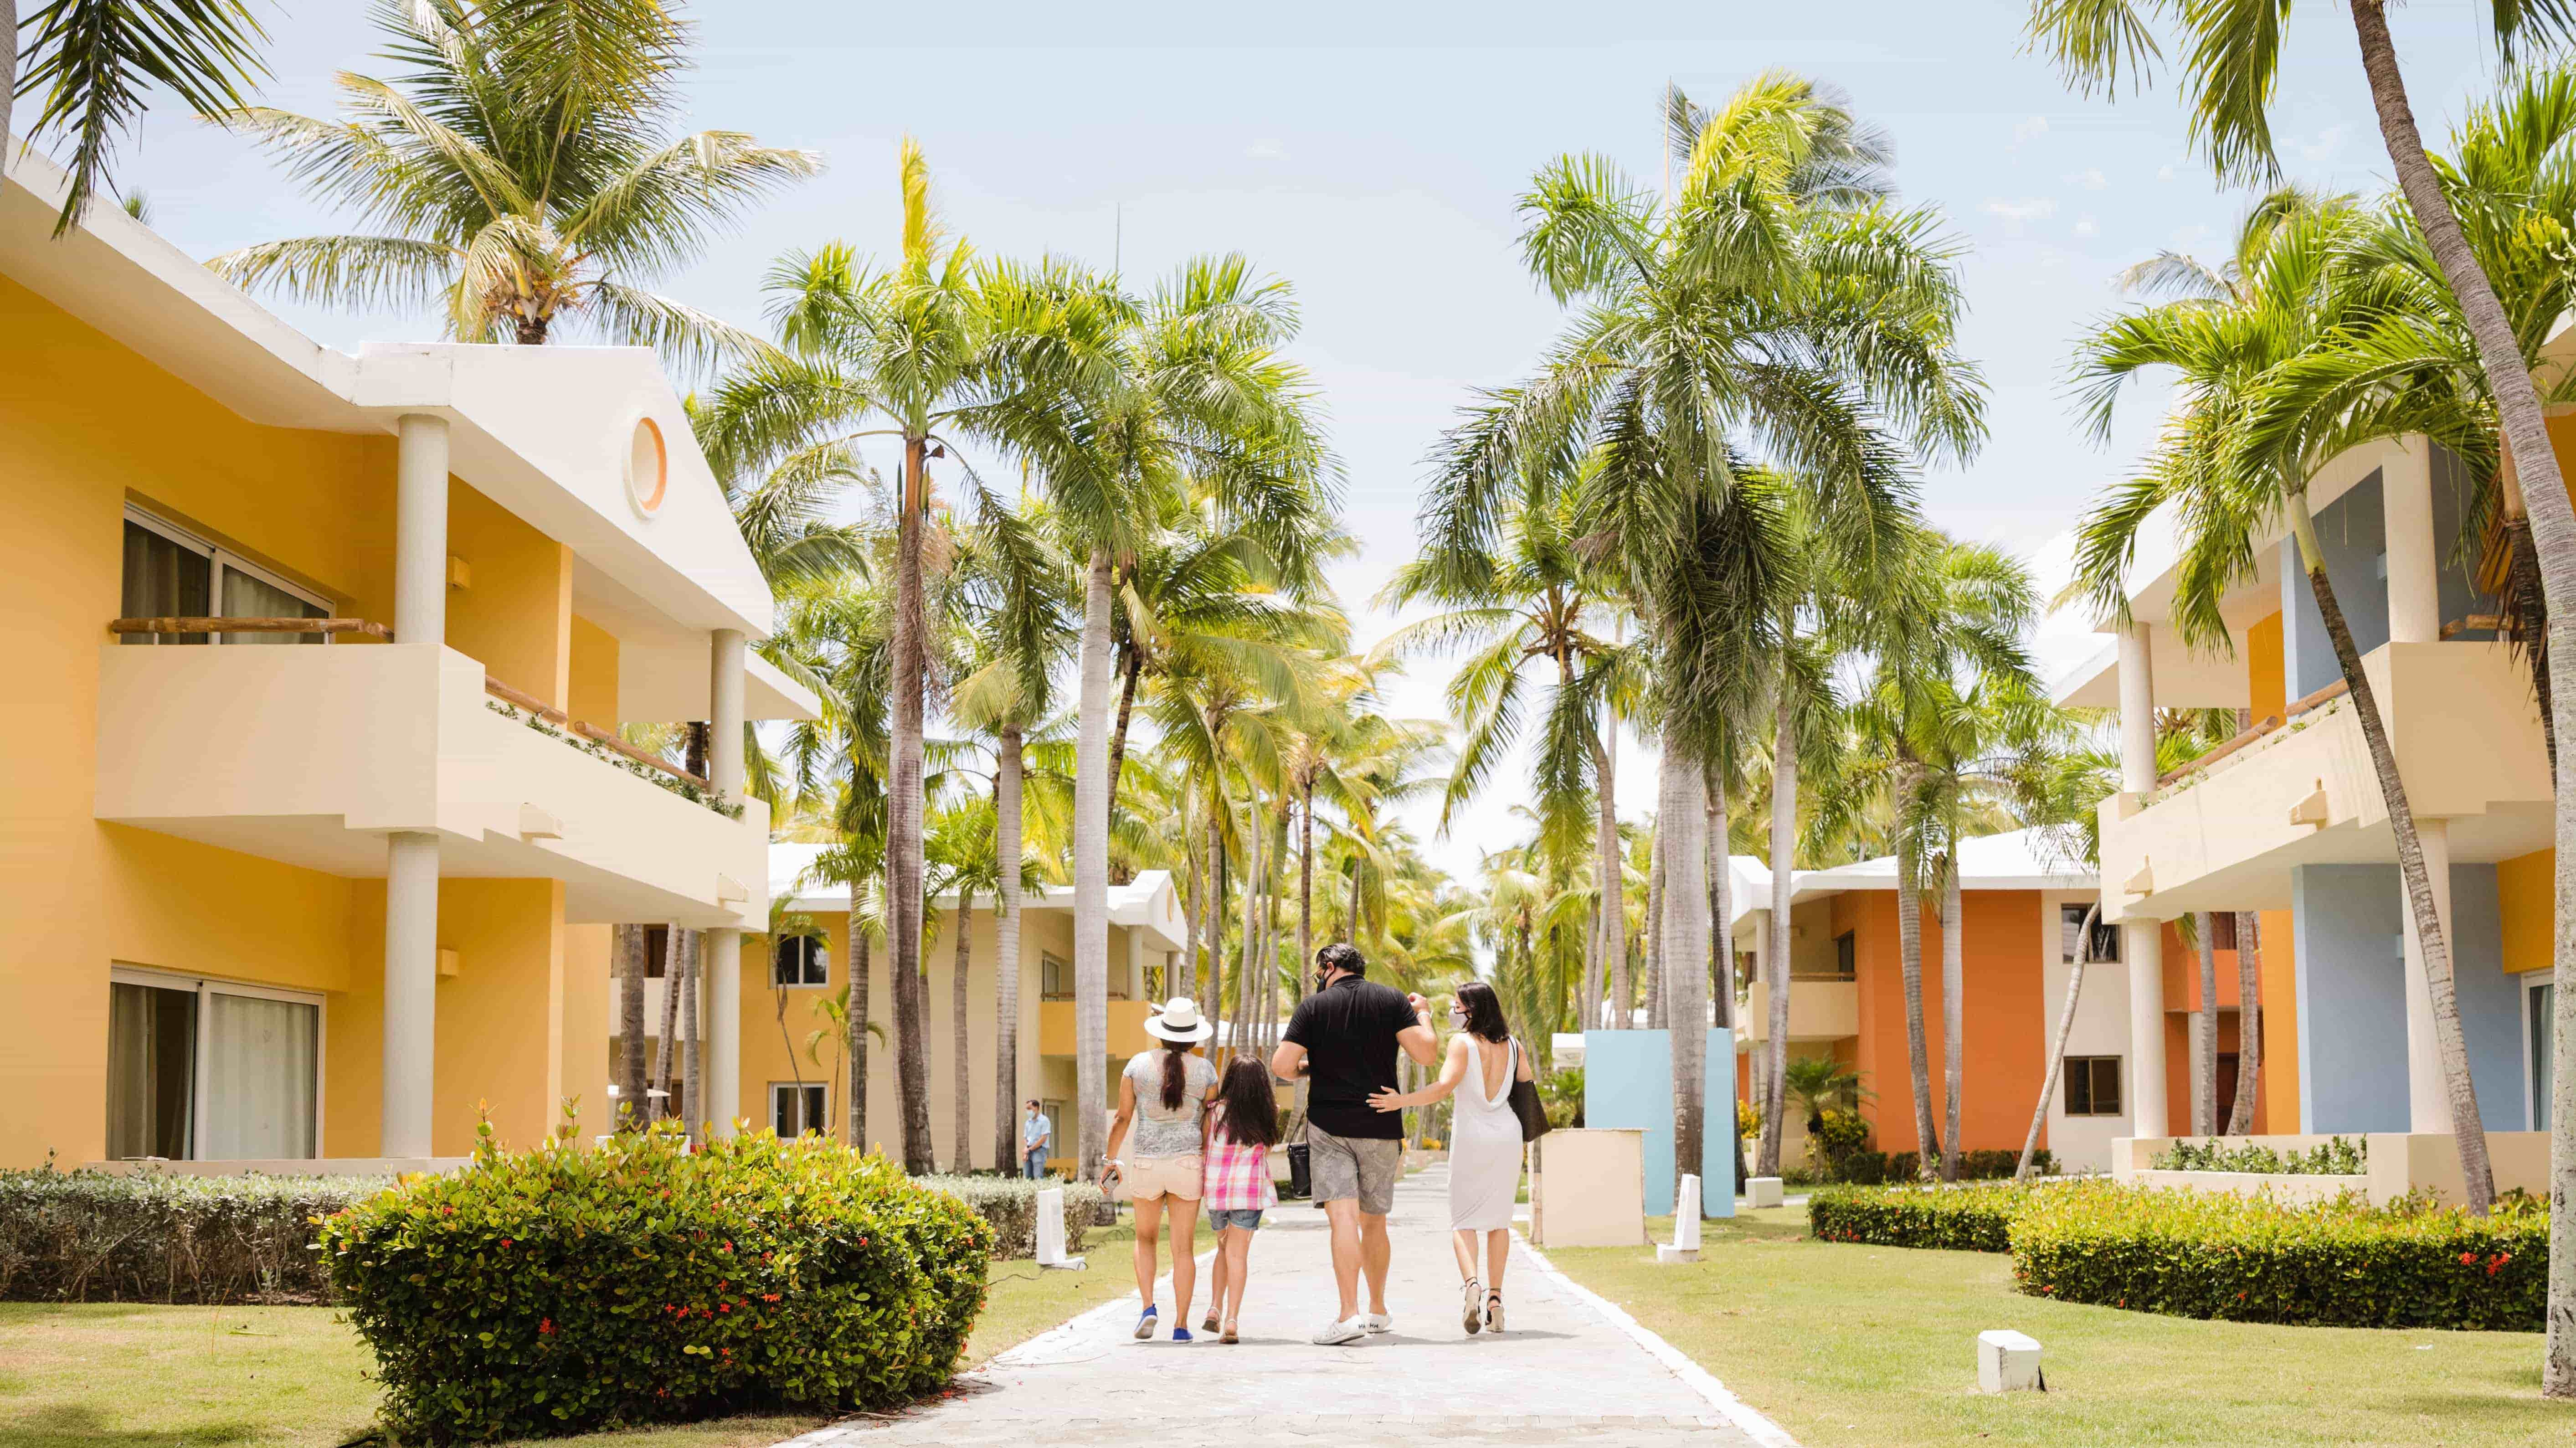 <p>Coral Level at Iberostar Selection B&aacute;varo reabre sus puertas implementando programa &ldquo;How We Care&rdquo;</p>